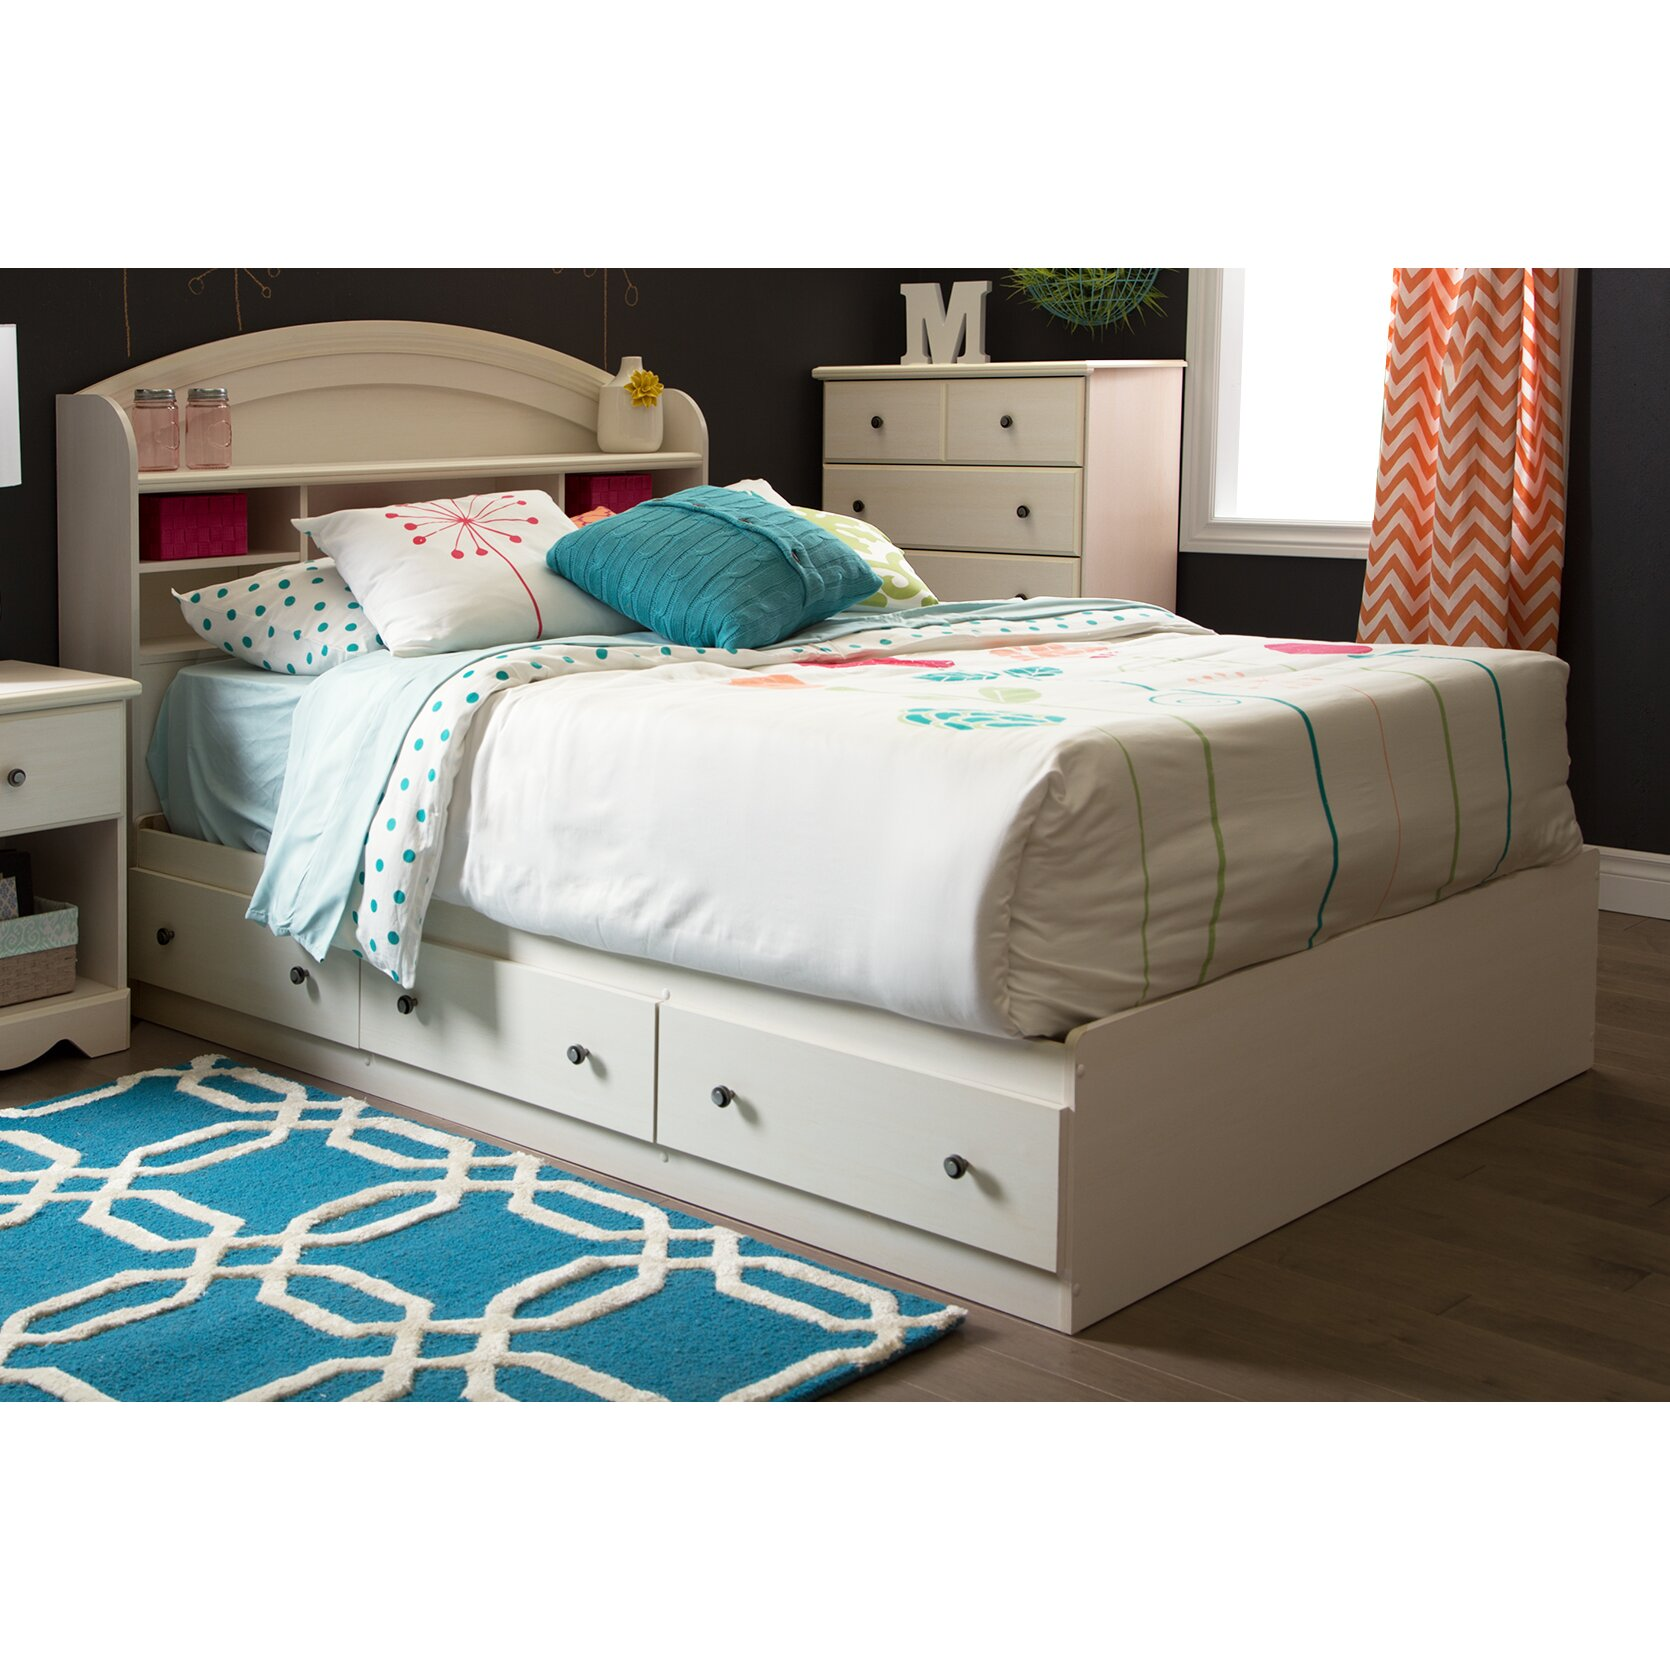 South Shore Bedroom Furniture South Shore Country Poetry Platform Customizable Bedroom Set